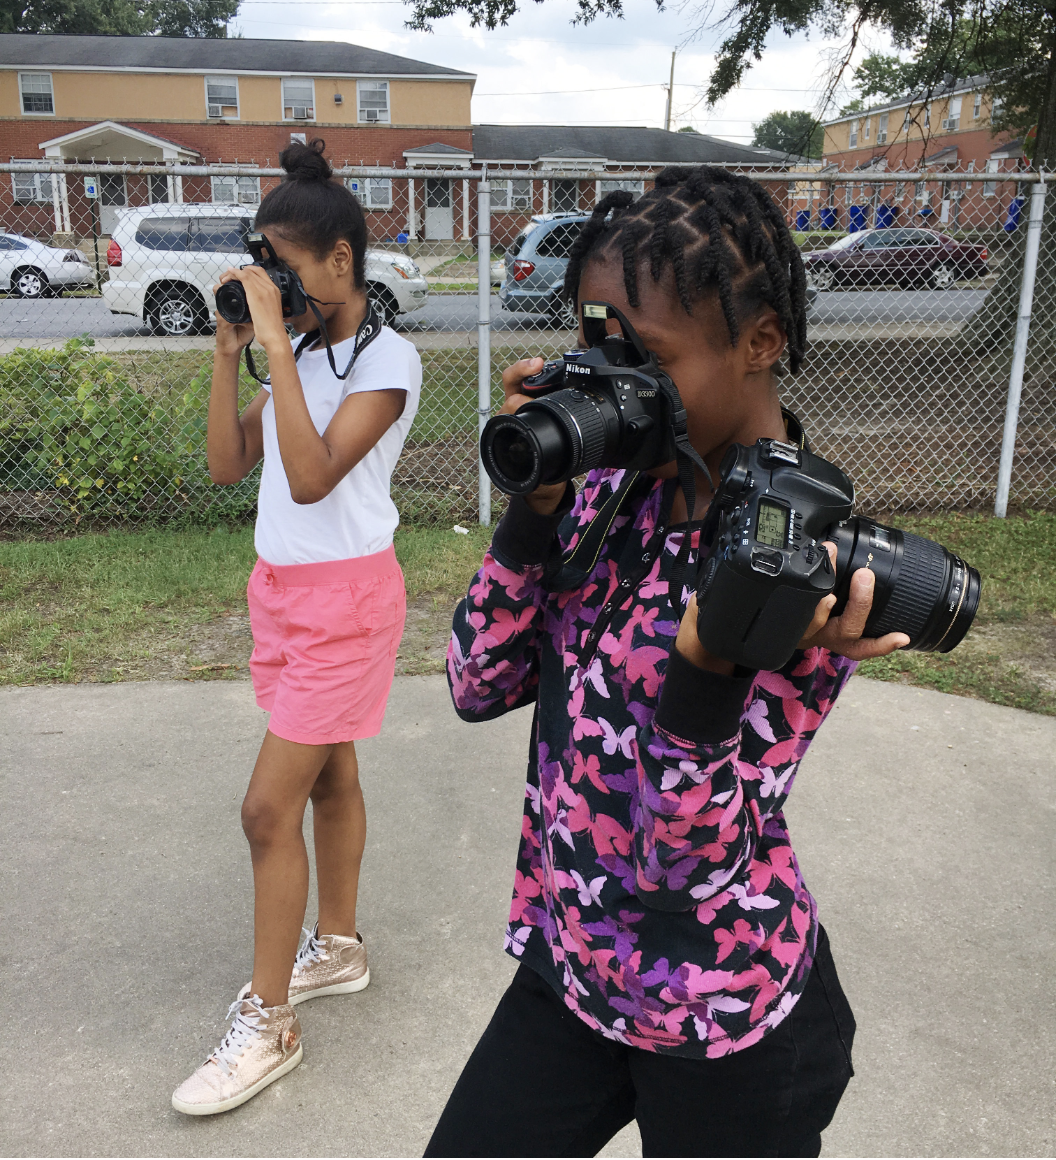 Digital Photography - (with the Black History Museum, running from July 15th-19th, 2019)We are excited to partner with the Black History Museum & Cultural Center of Richmond this summer. Students will get to know the museum's collections and explore historic Jackson Ward while learning the fundamentals of digital photography. Registration details to come soon!